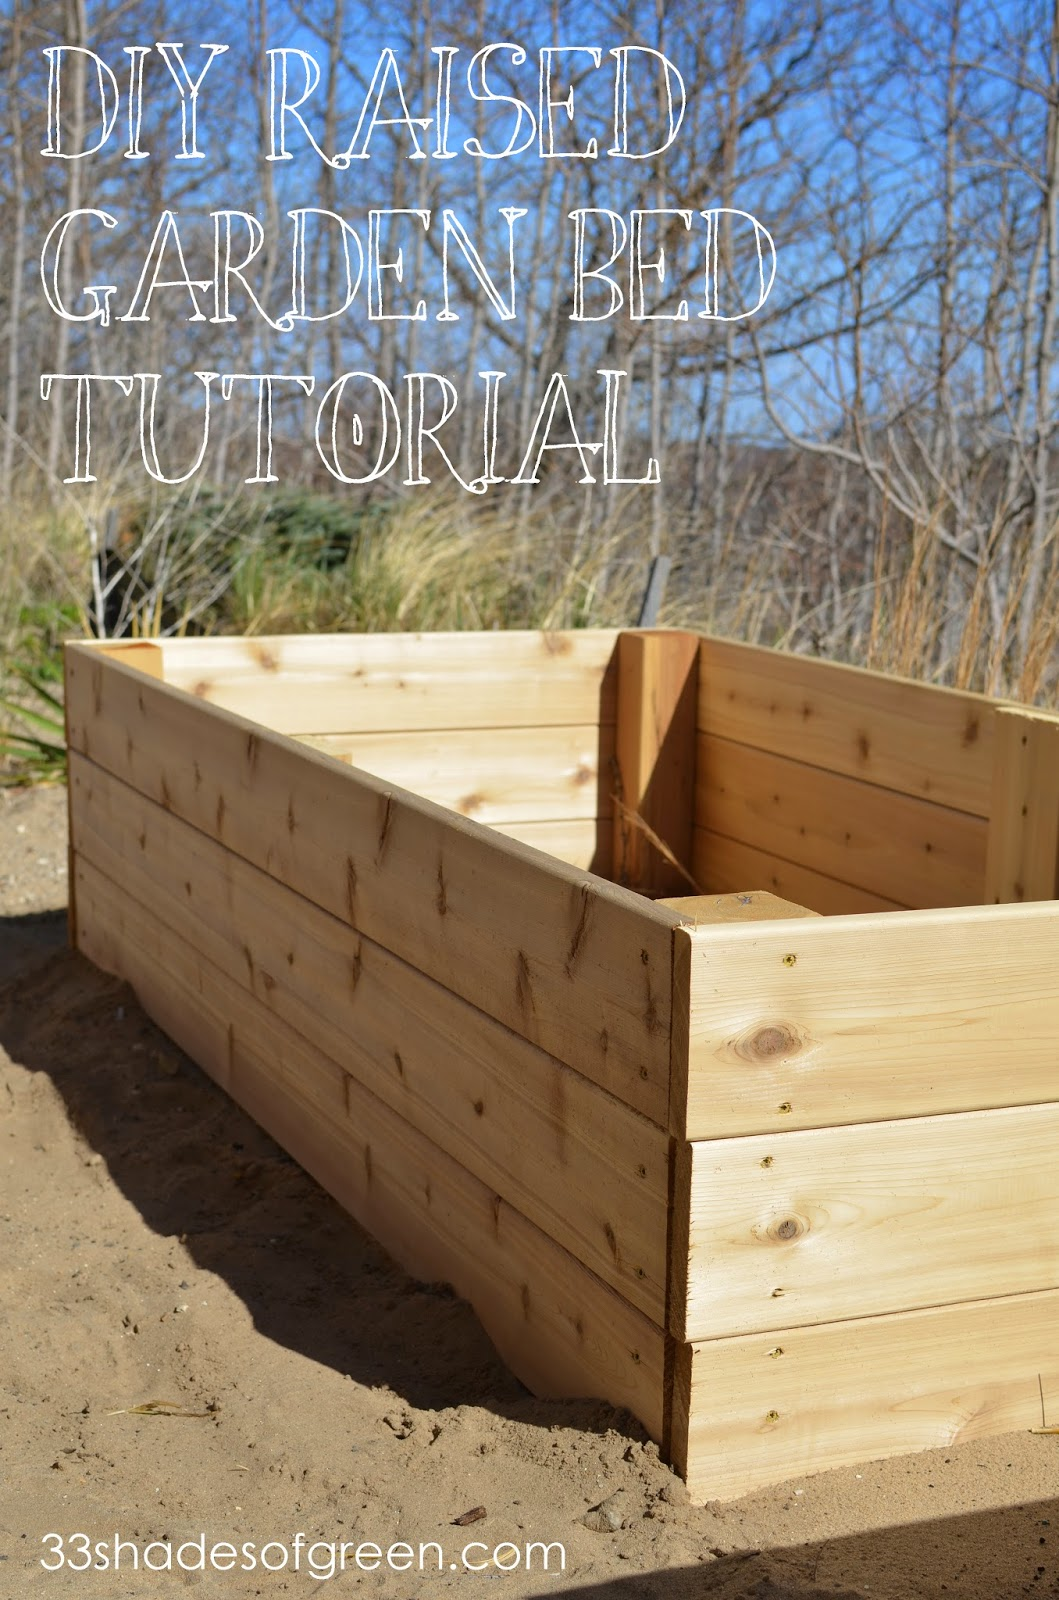 articlecube bed how building raised guide zpsslacaodh a your to professional build beds garden